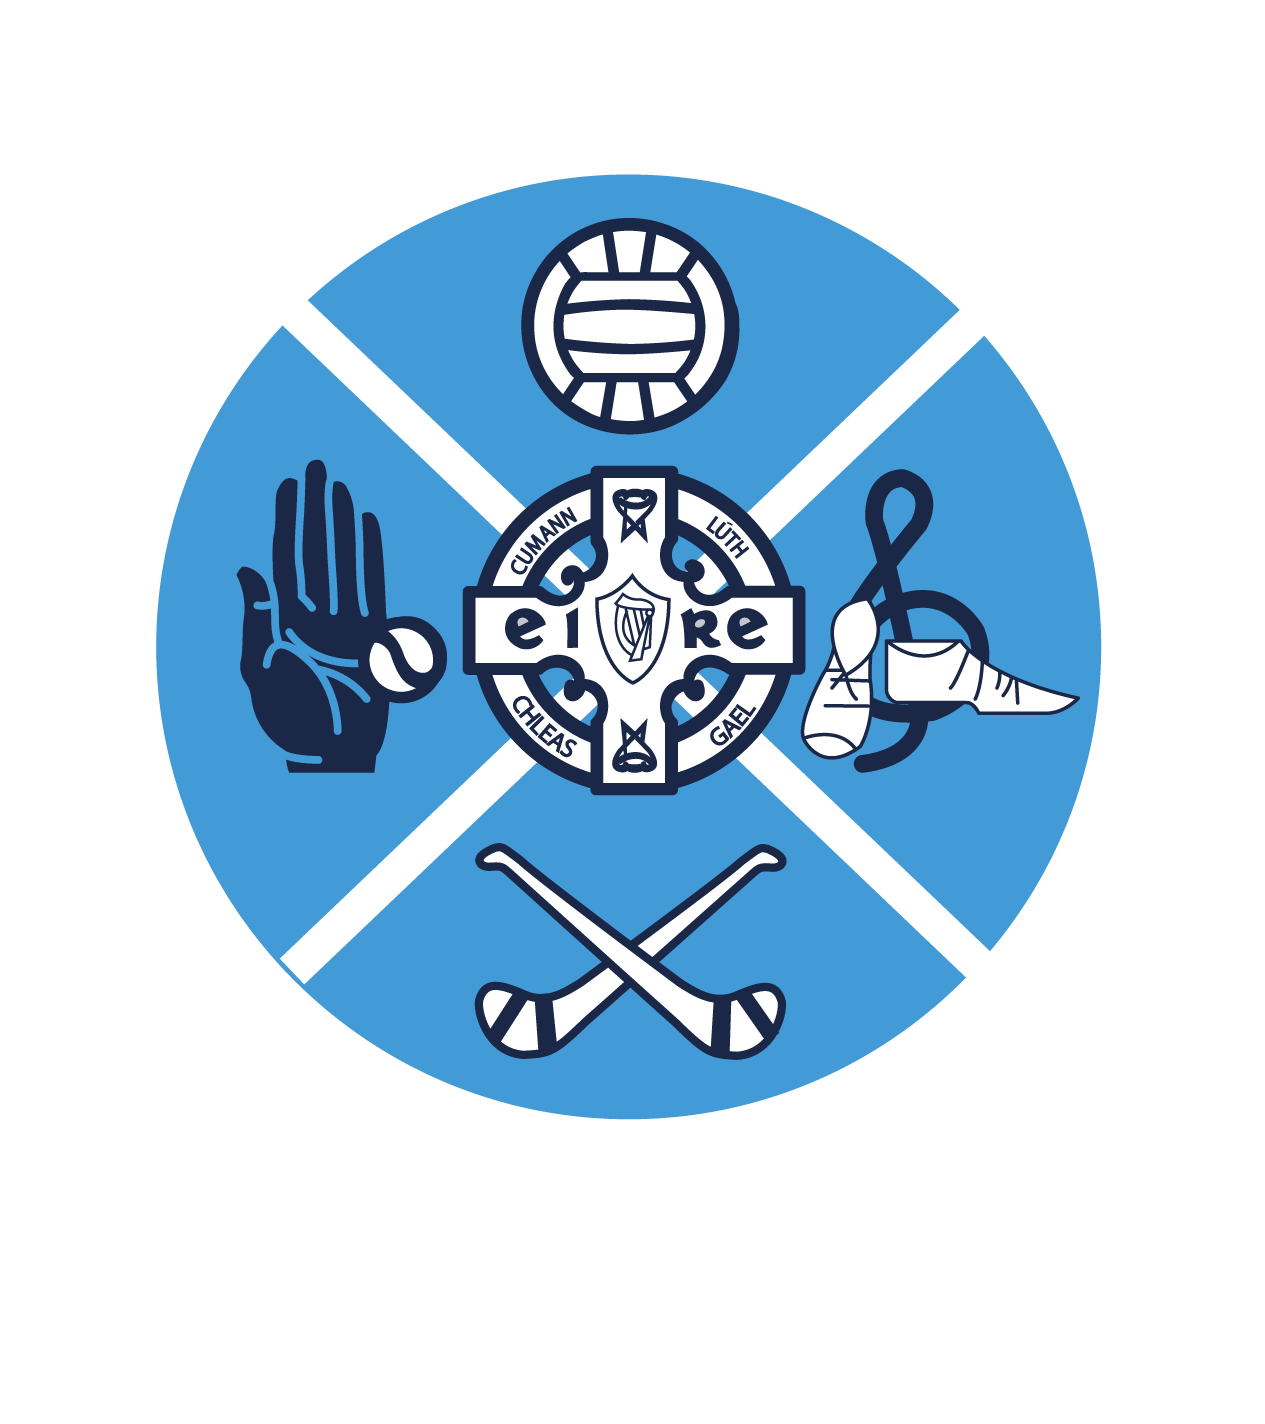 Killyclogher St. Mary's / Cappagh GAA